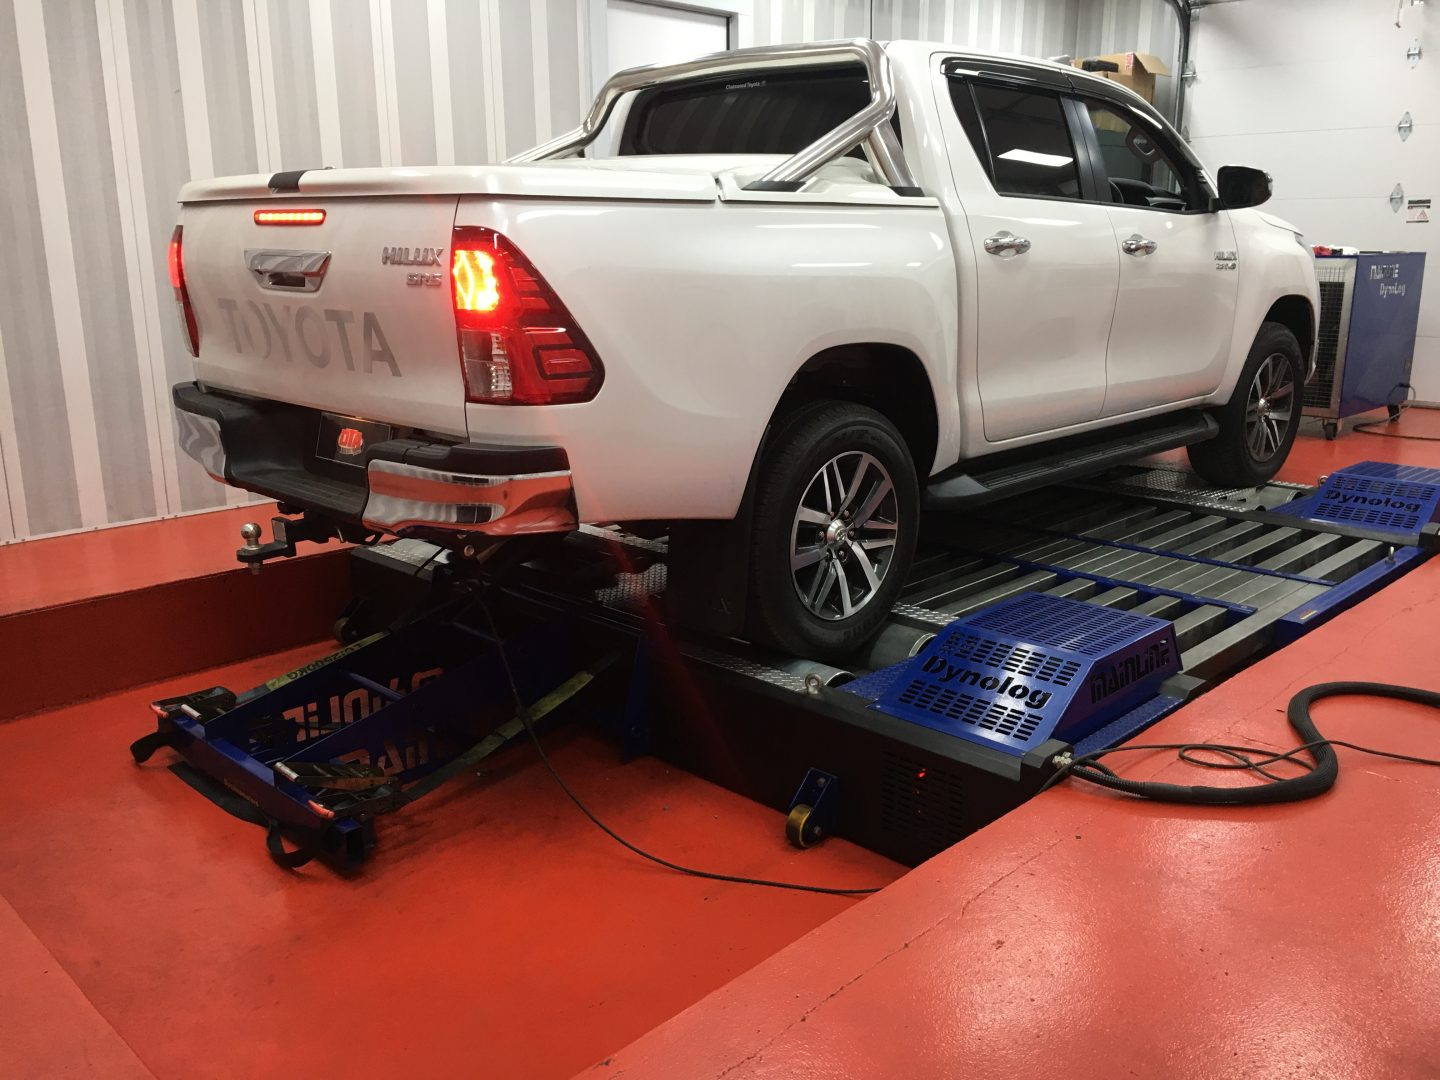 toyota hilux 2017 2 8 remap tuning diesel tuning australia. Black Bedroom Furniture Sets. Home Design Ideas